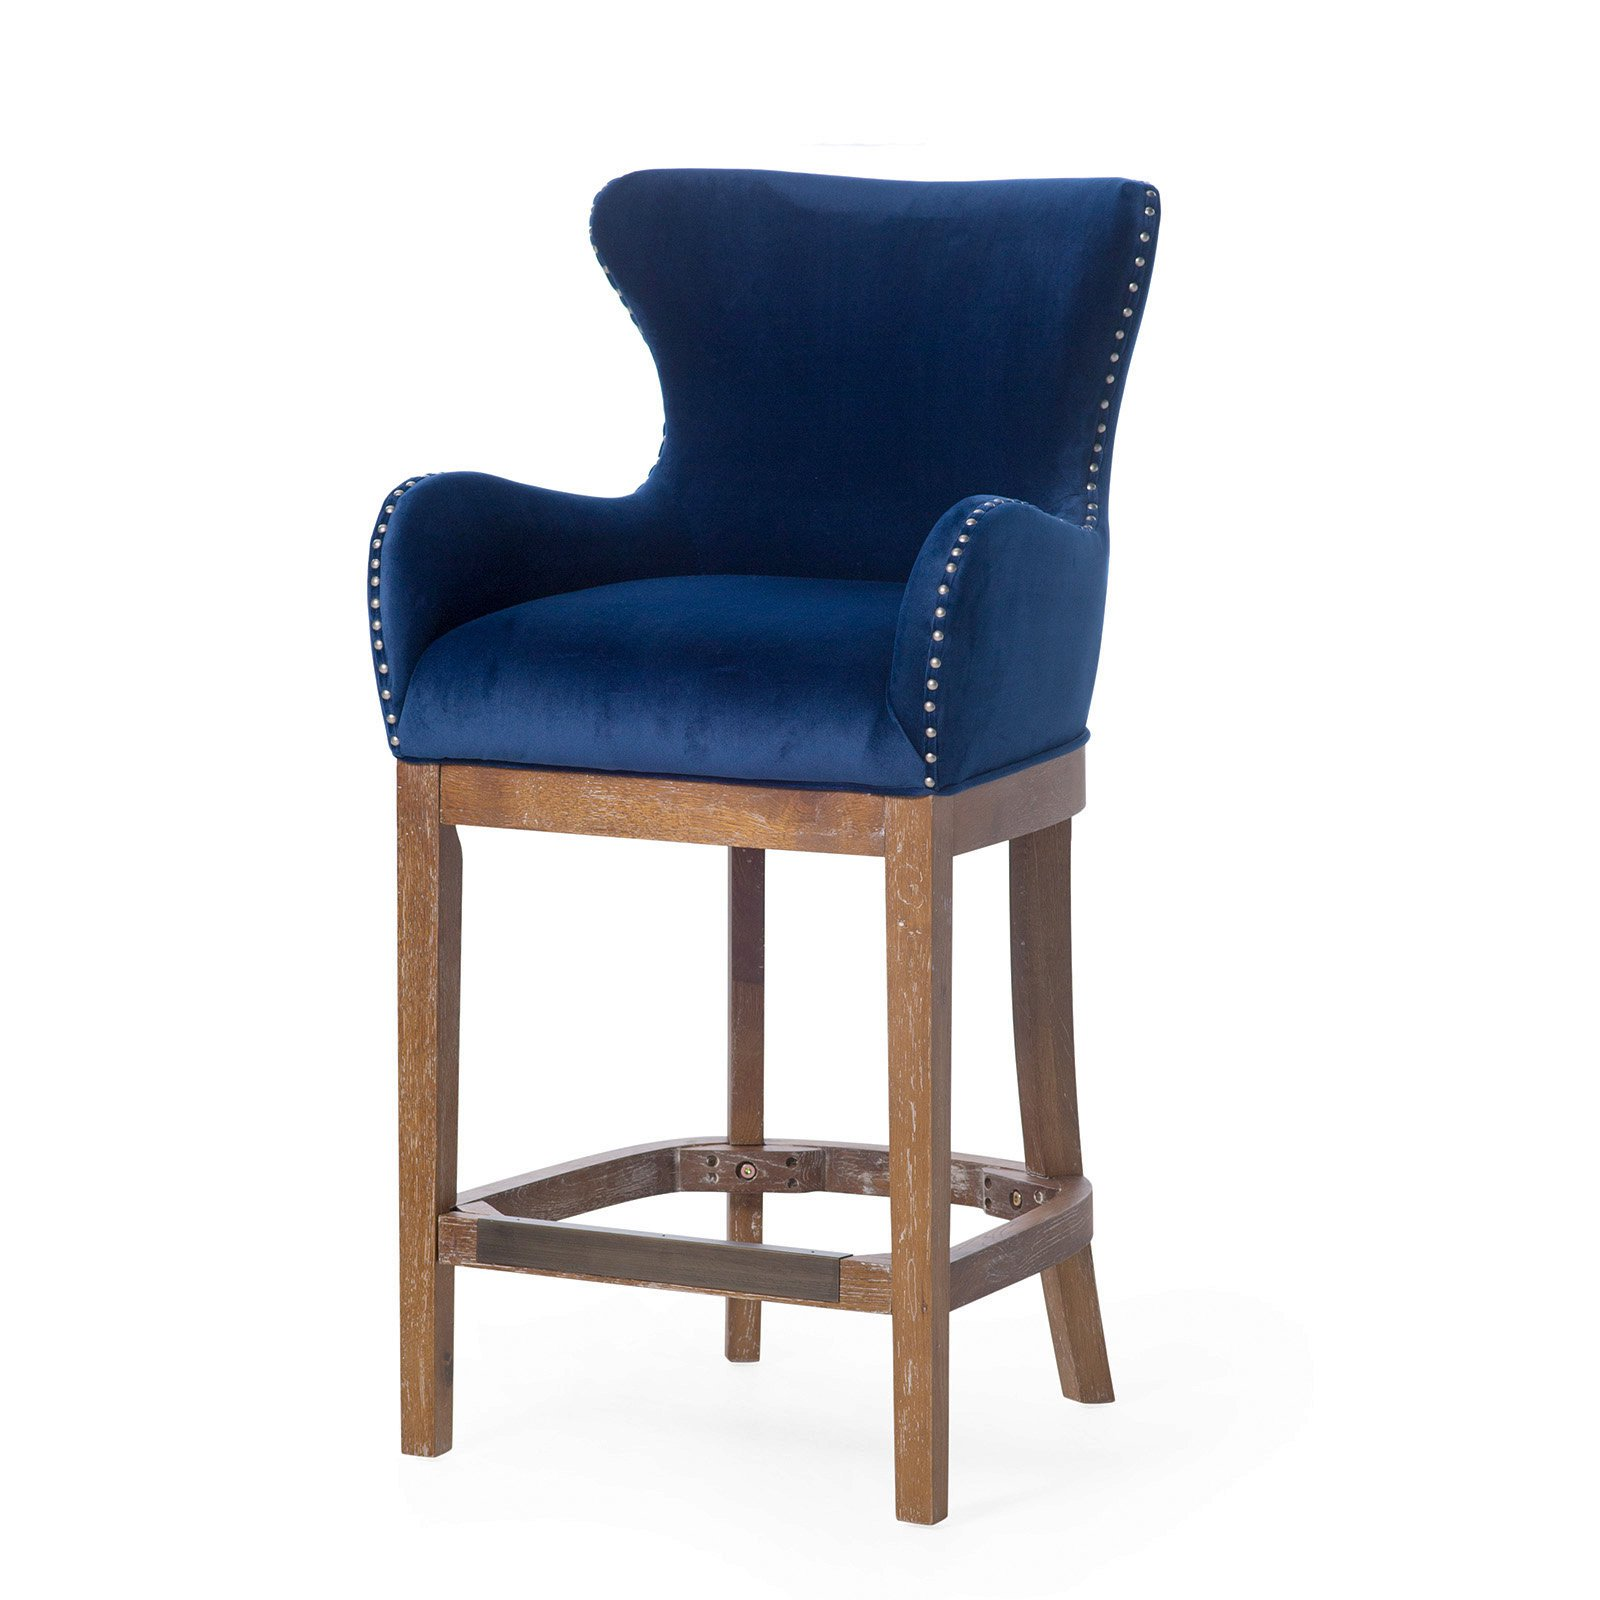 Belham Living Darcy Wingback 27 in. Counter Stool